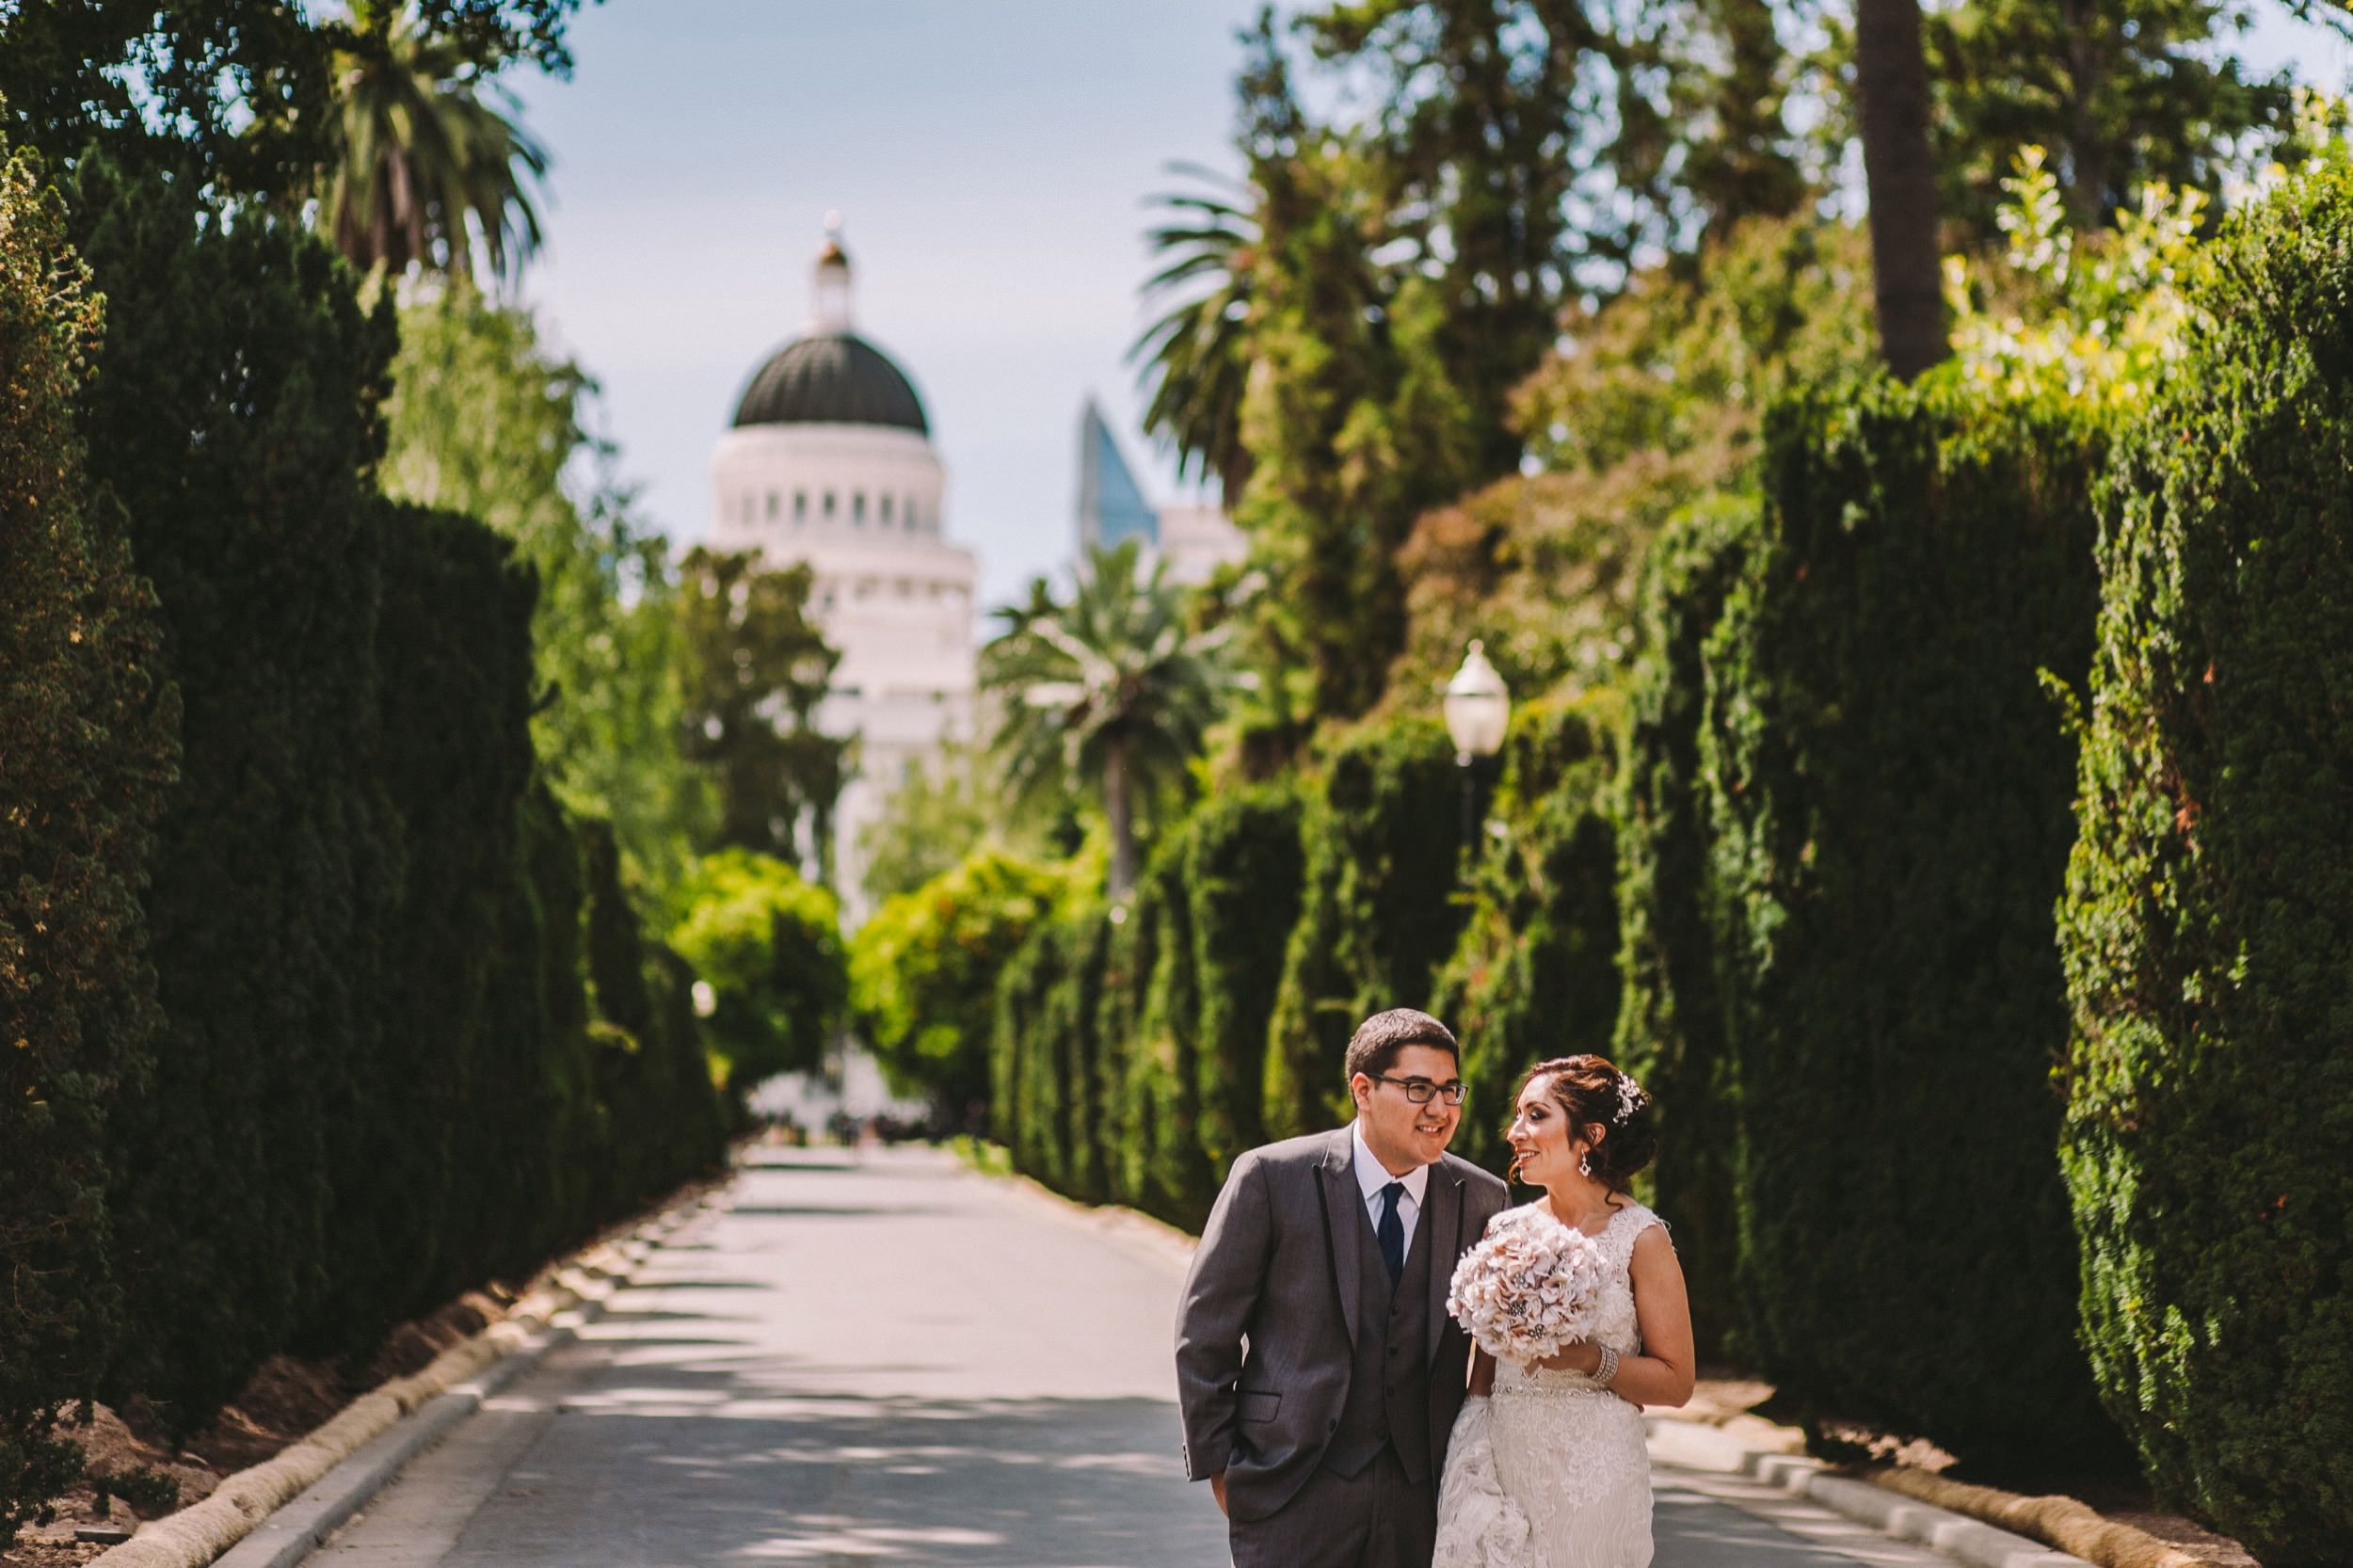 Sacramento Sutter Club & Capitol Building Wedding Photography-120.jpg